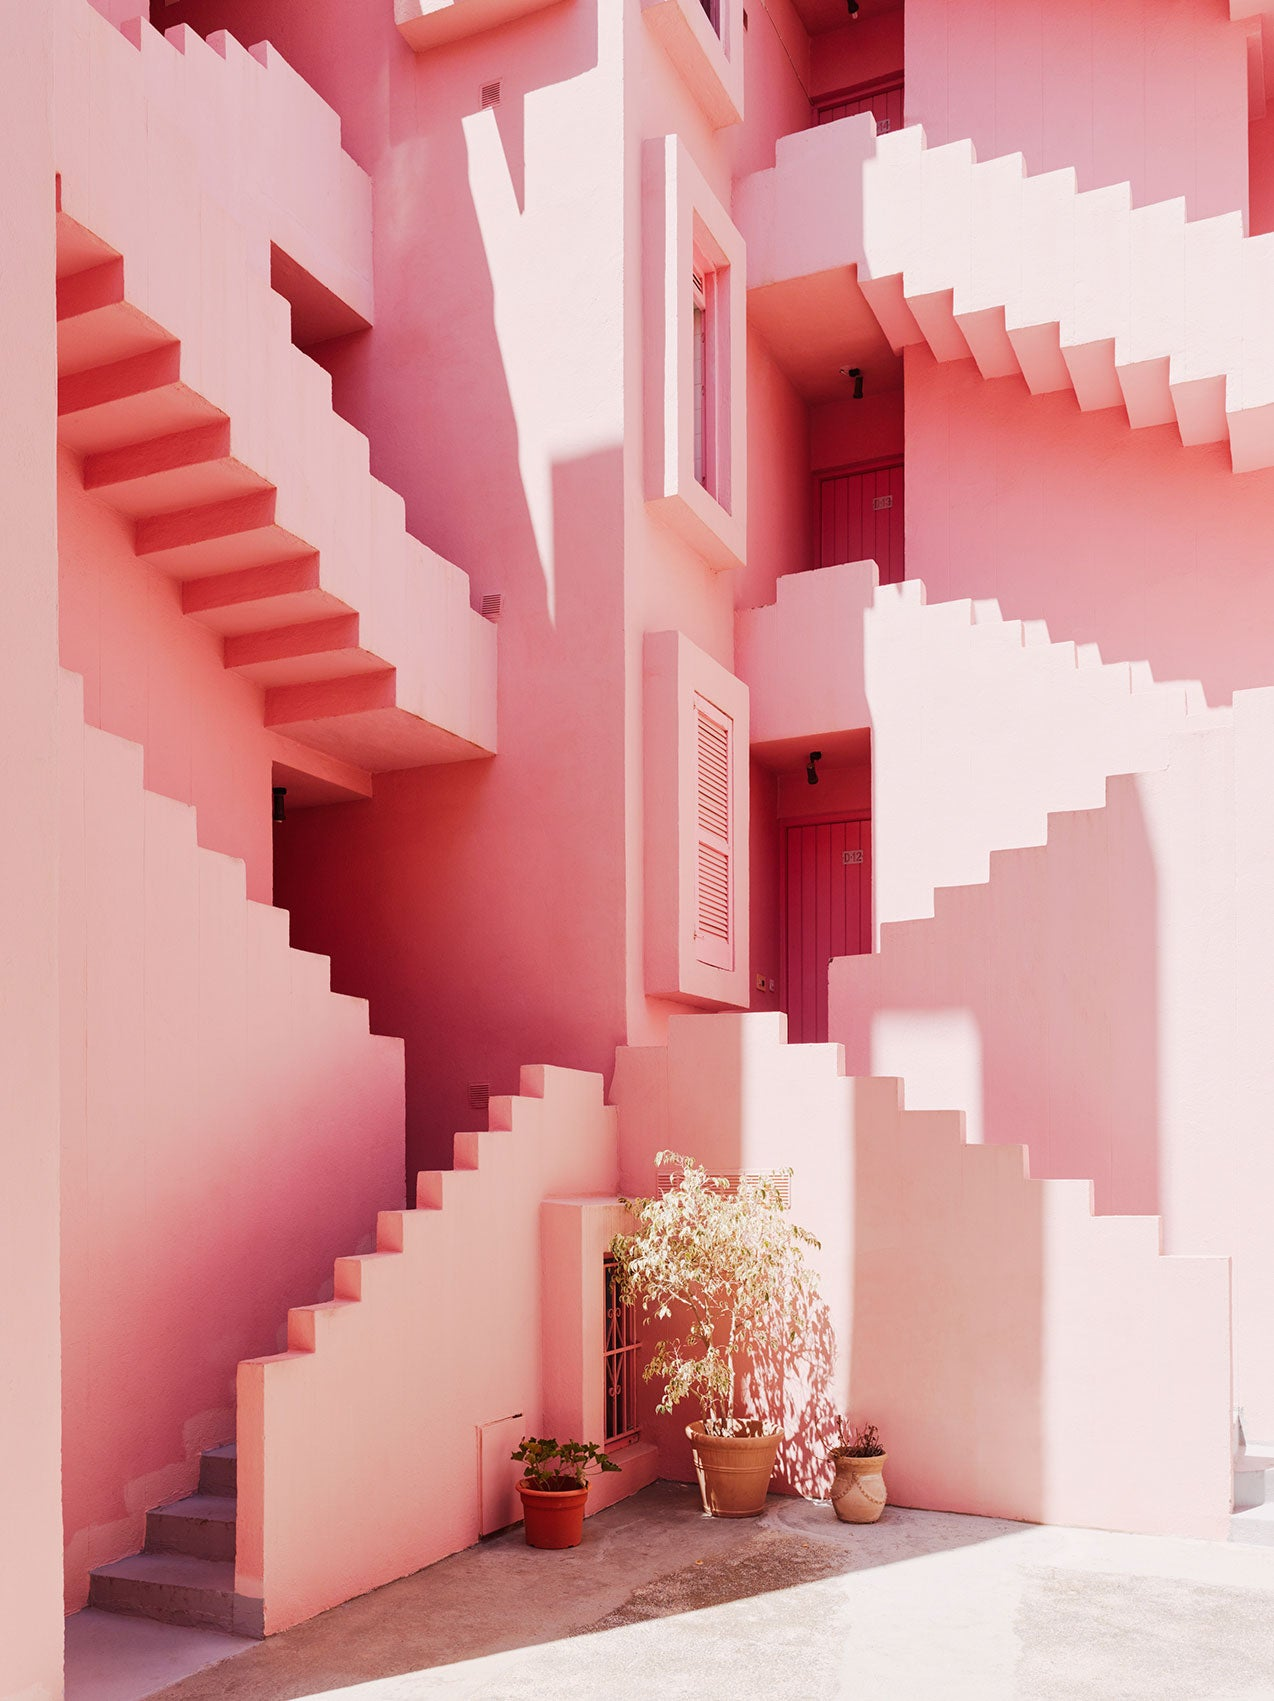 Pink concrete house with stairs